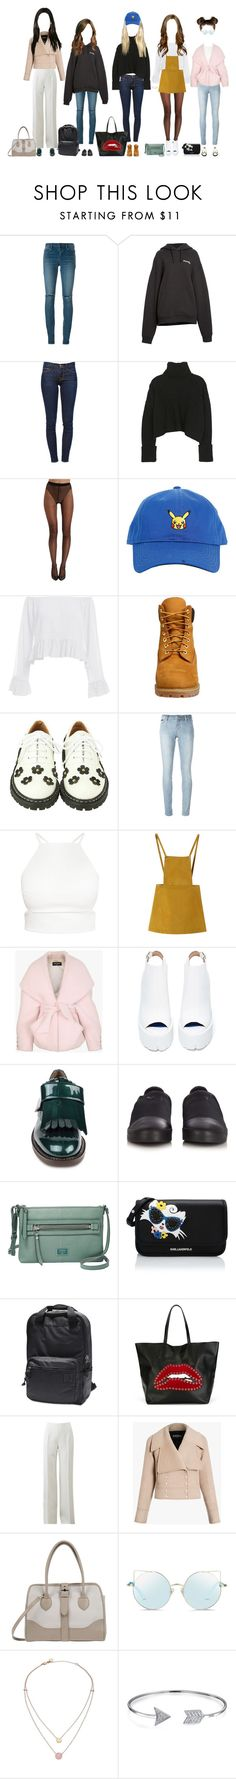 """""""Promise at Gimhae Internation Airport"""" by promise-official ❤ liked on Polyvore featuring Yves Saint Laurent, Vetements, Frame, Wolford, Timberland, Philipp Plein, Chicnova Fashion, Balmain, Jeffrey Campbell and Marni"""